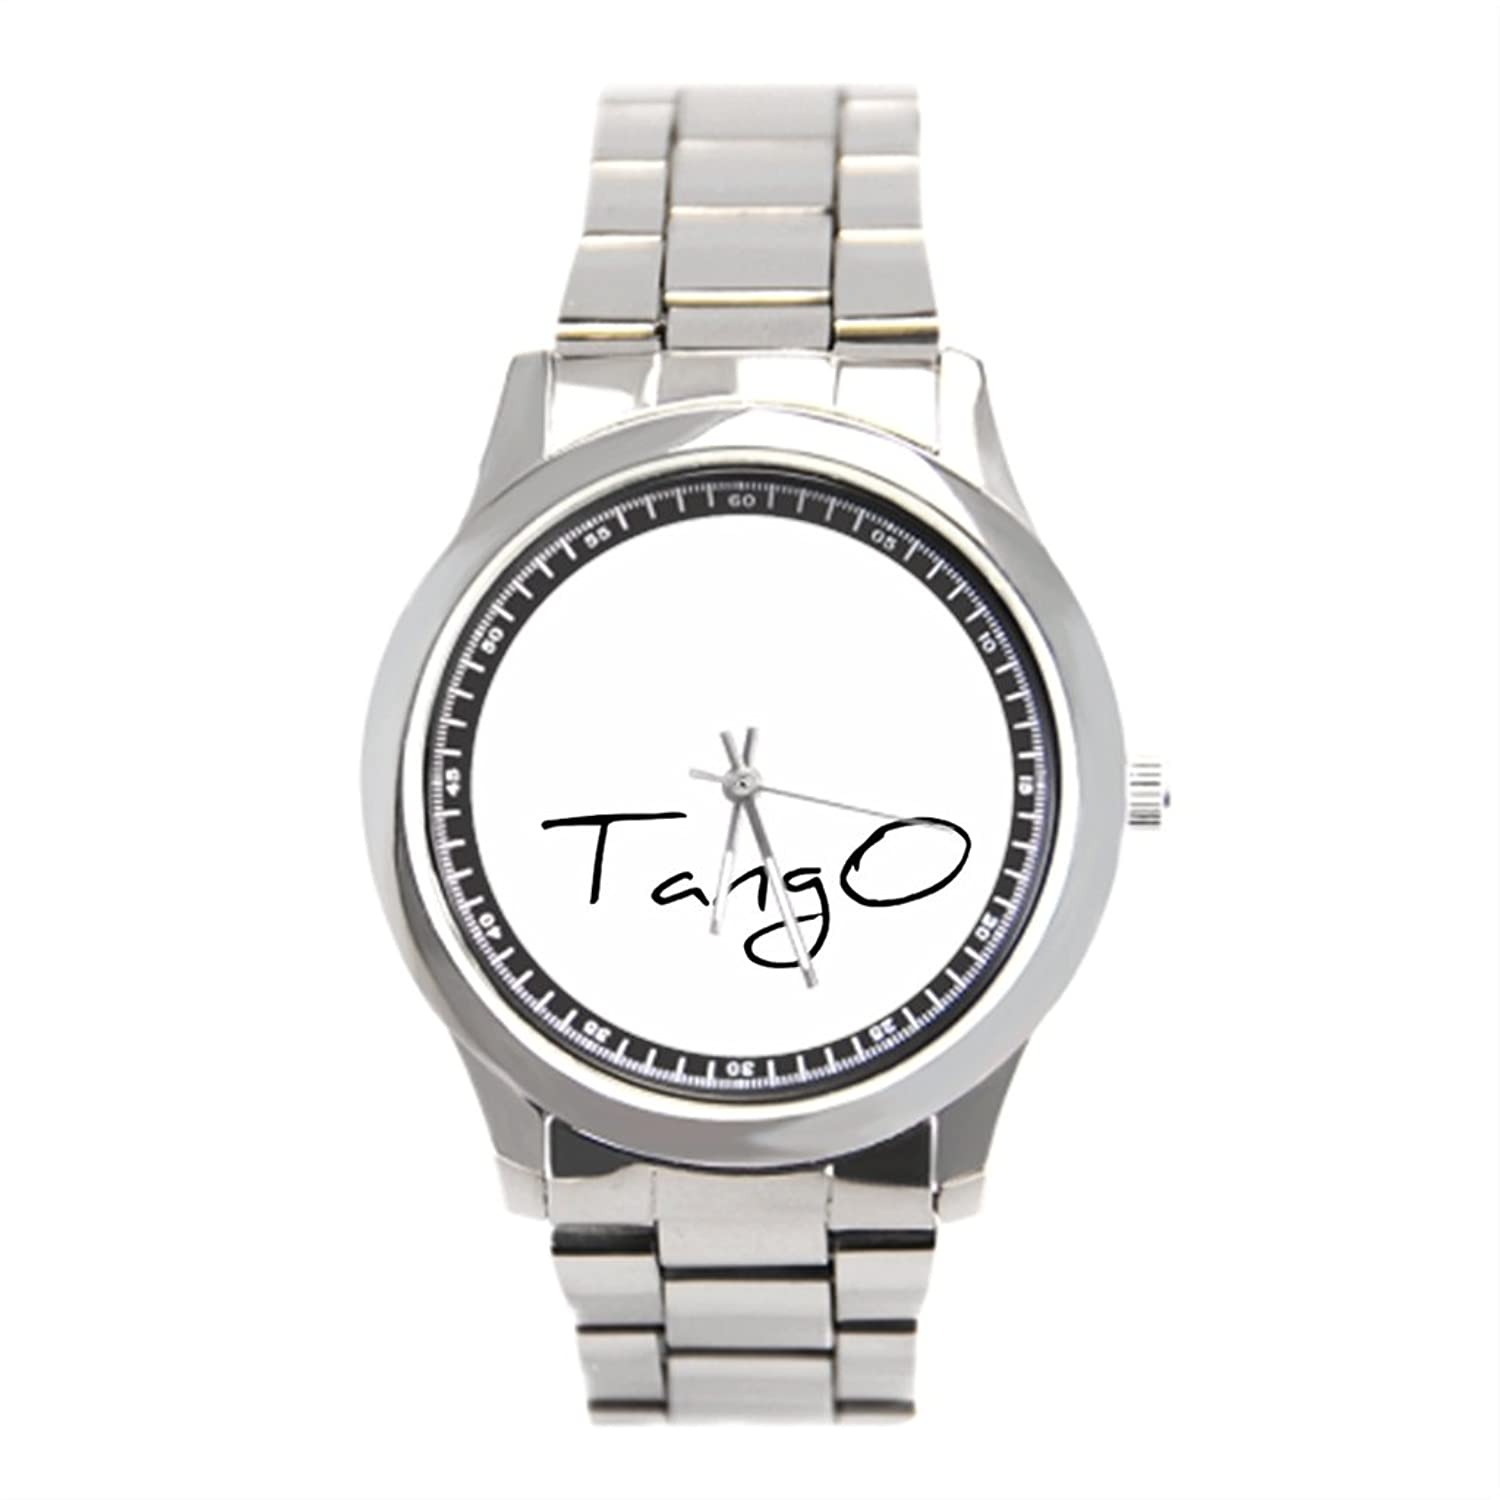 Amazon.com: Fatbeauty Stainless Steel Watches Argentine Tango Best Wrist Watches: Watches